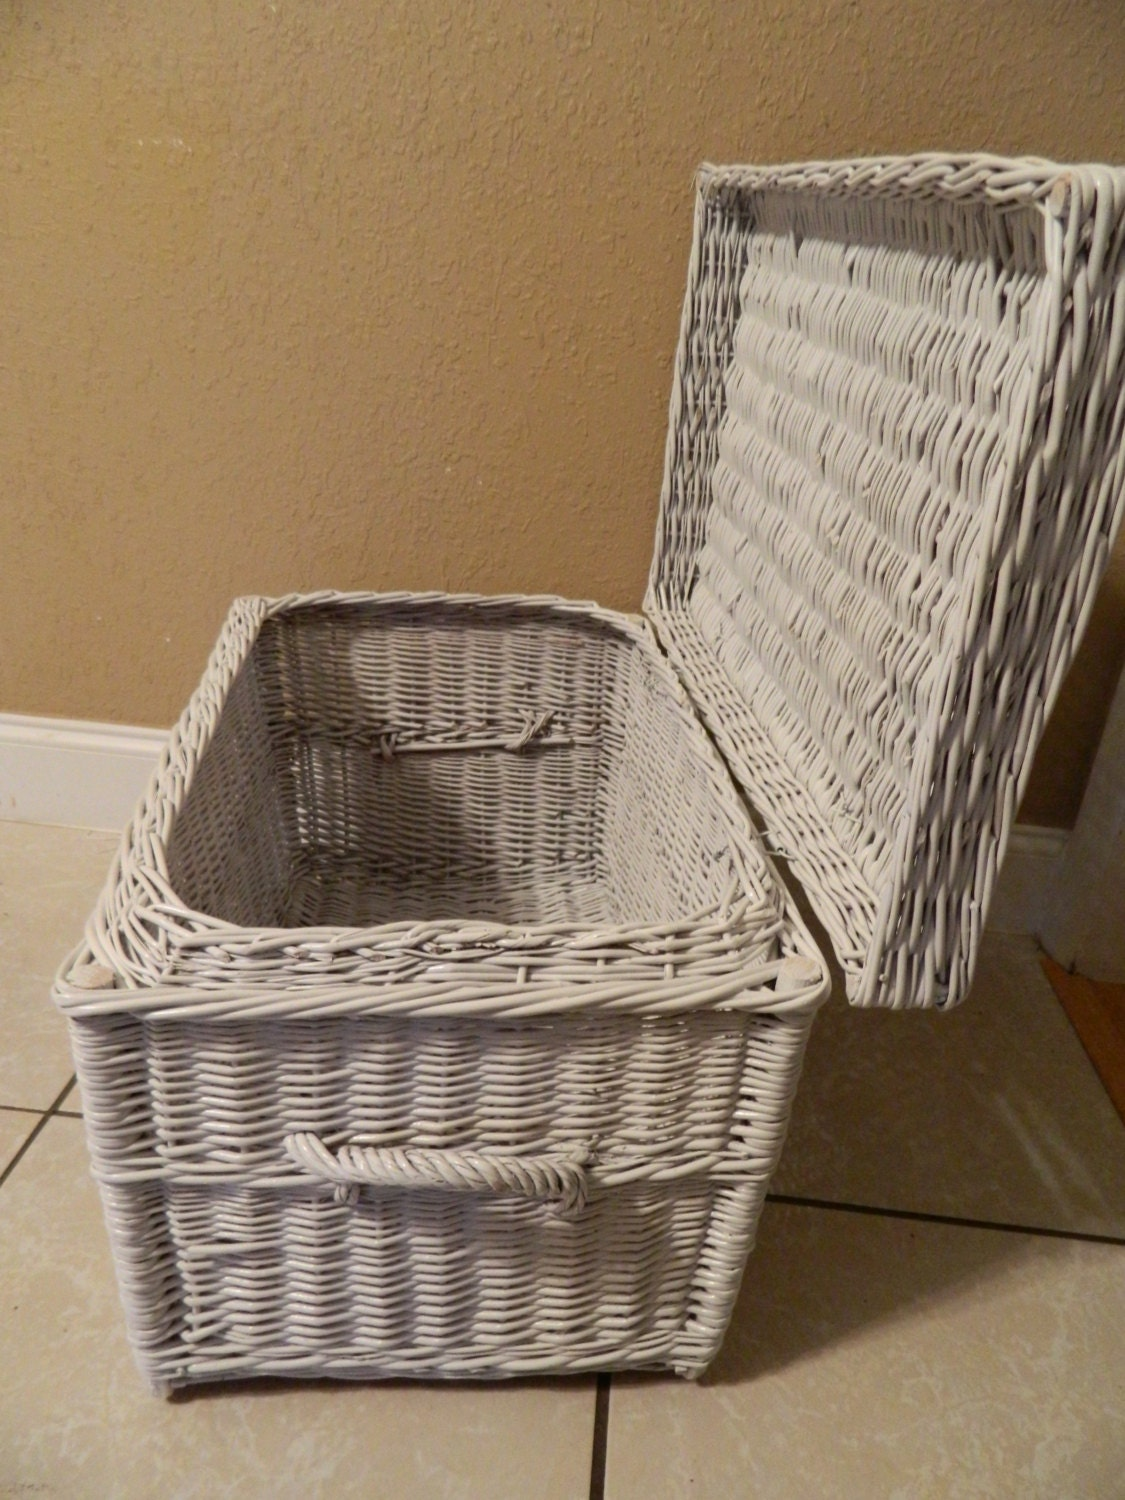 Vintage Wicker Trunk Basket White Antique Wicker